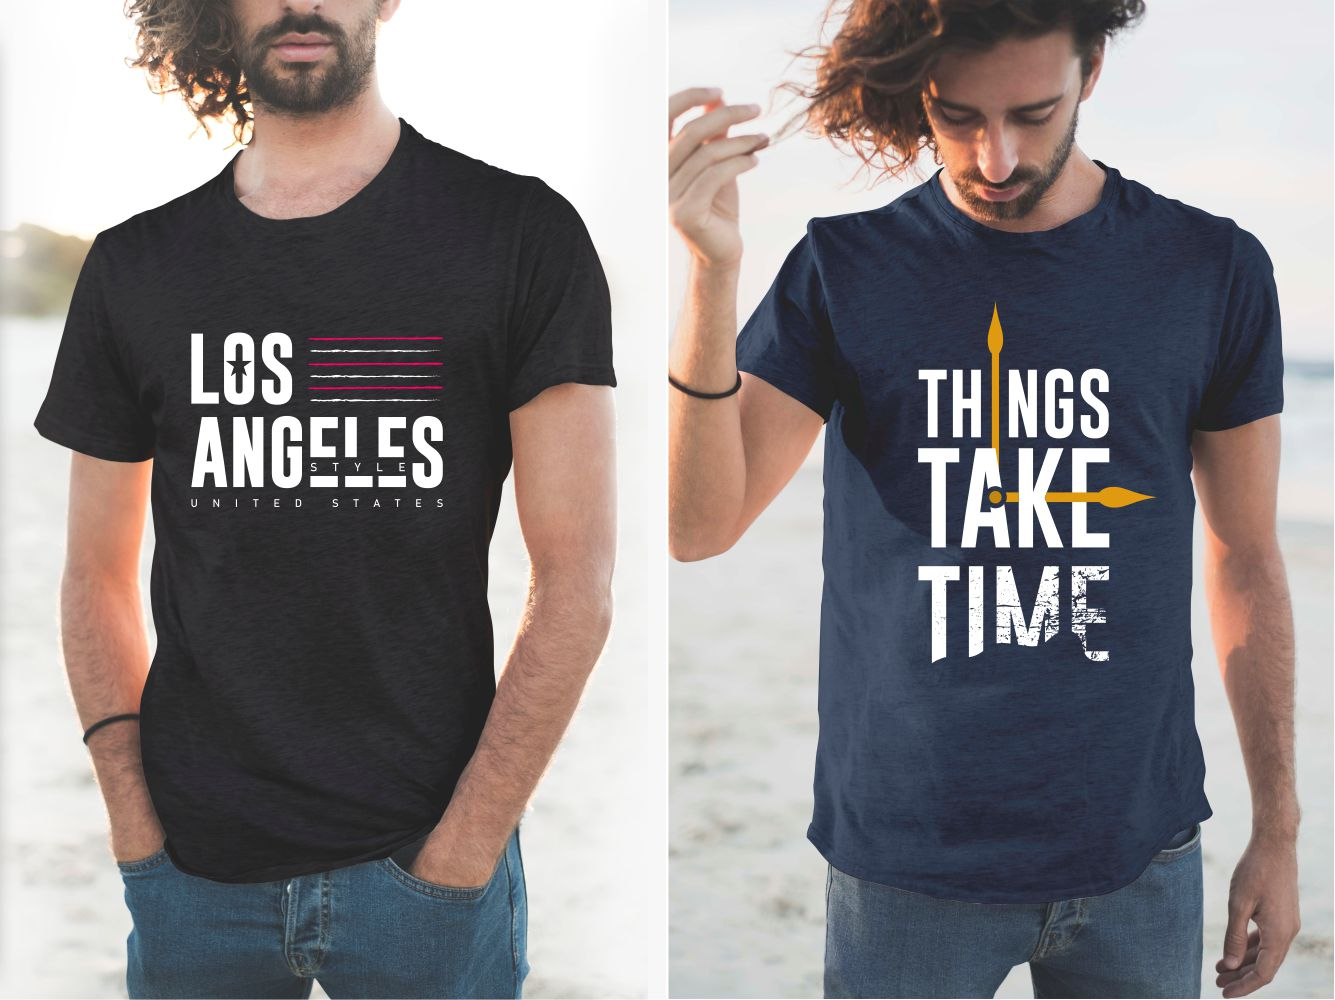 The original design of the lettering on the T-shirts makes them ultra stylish and relevant. in our time.